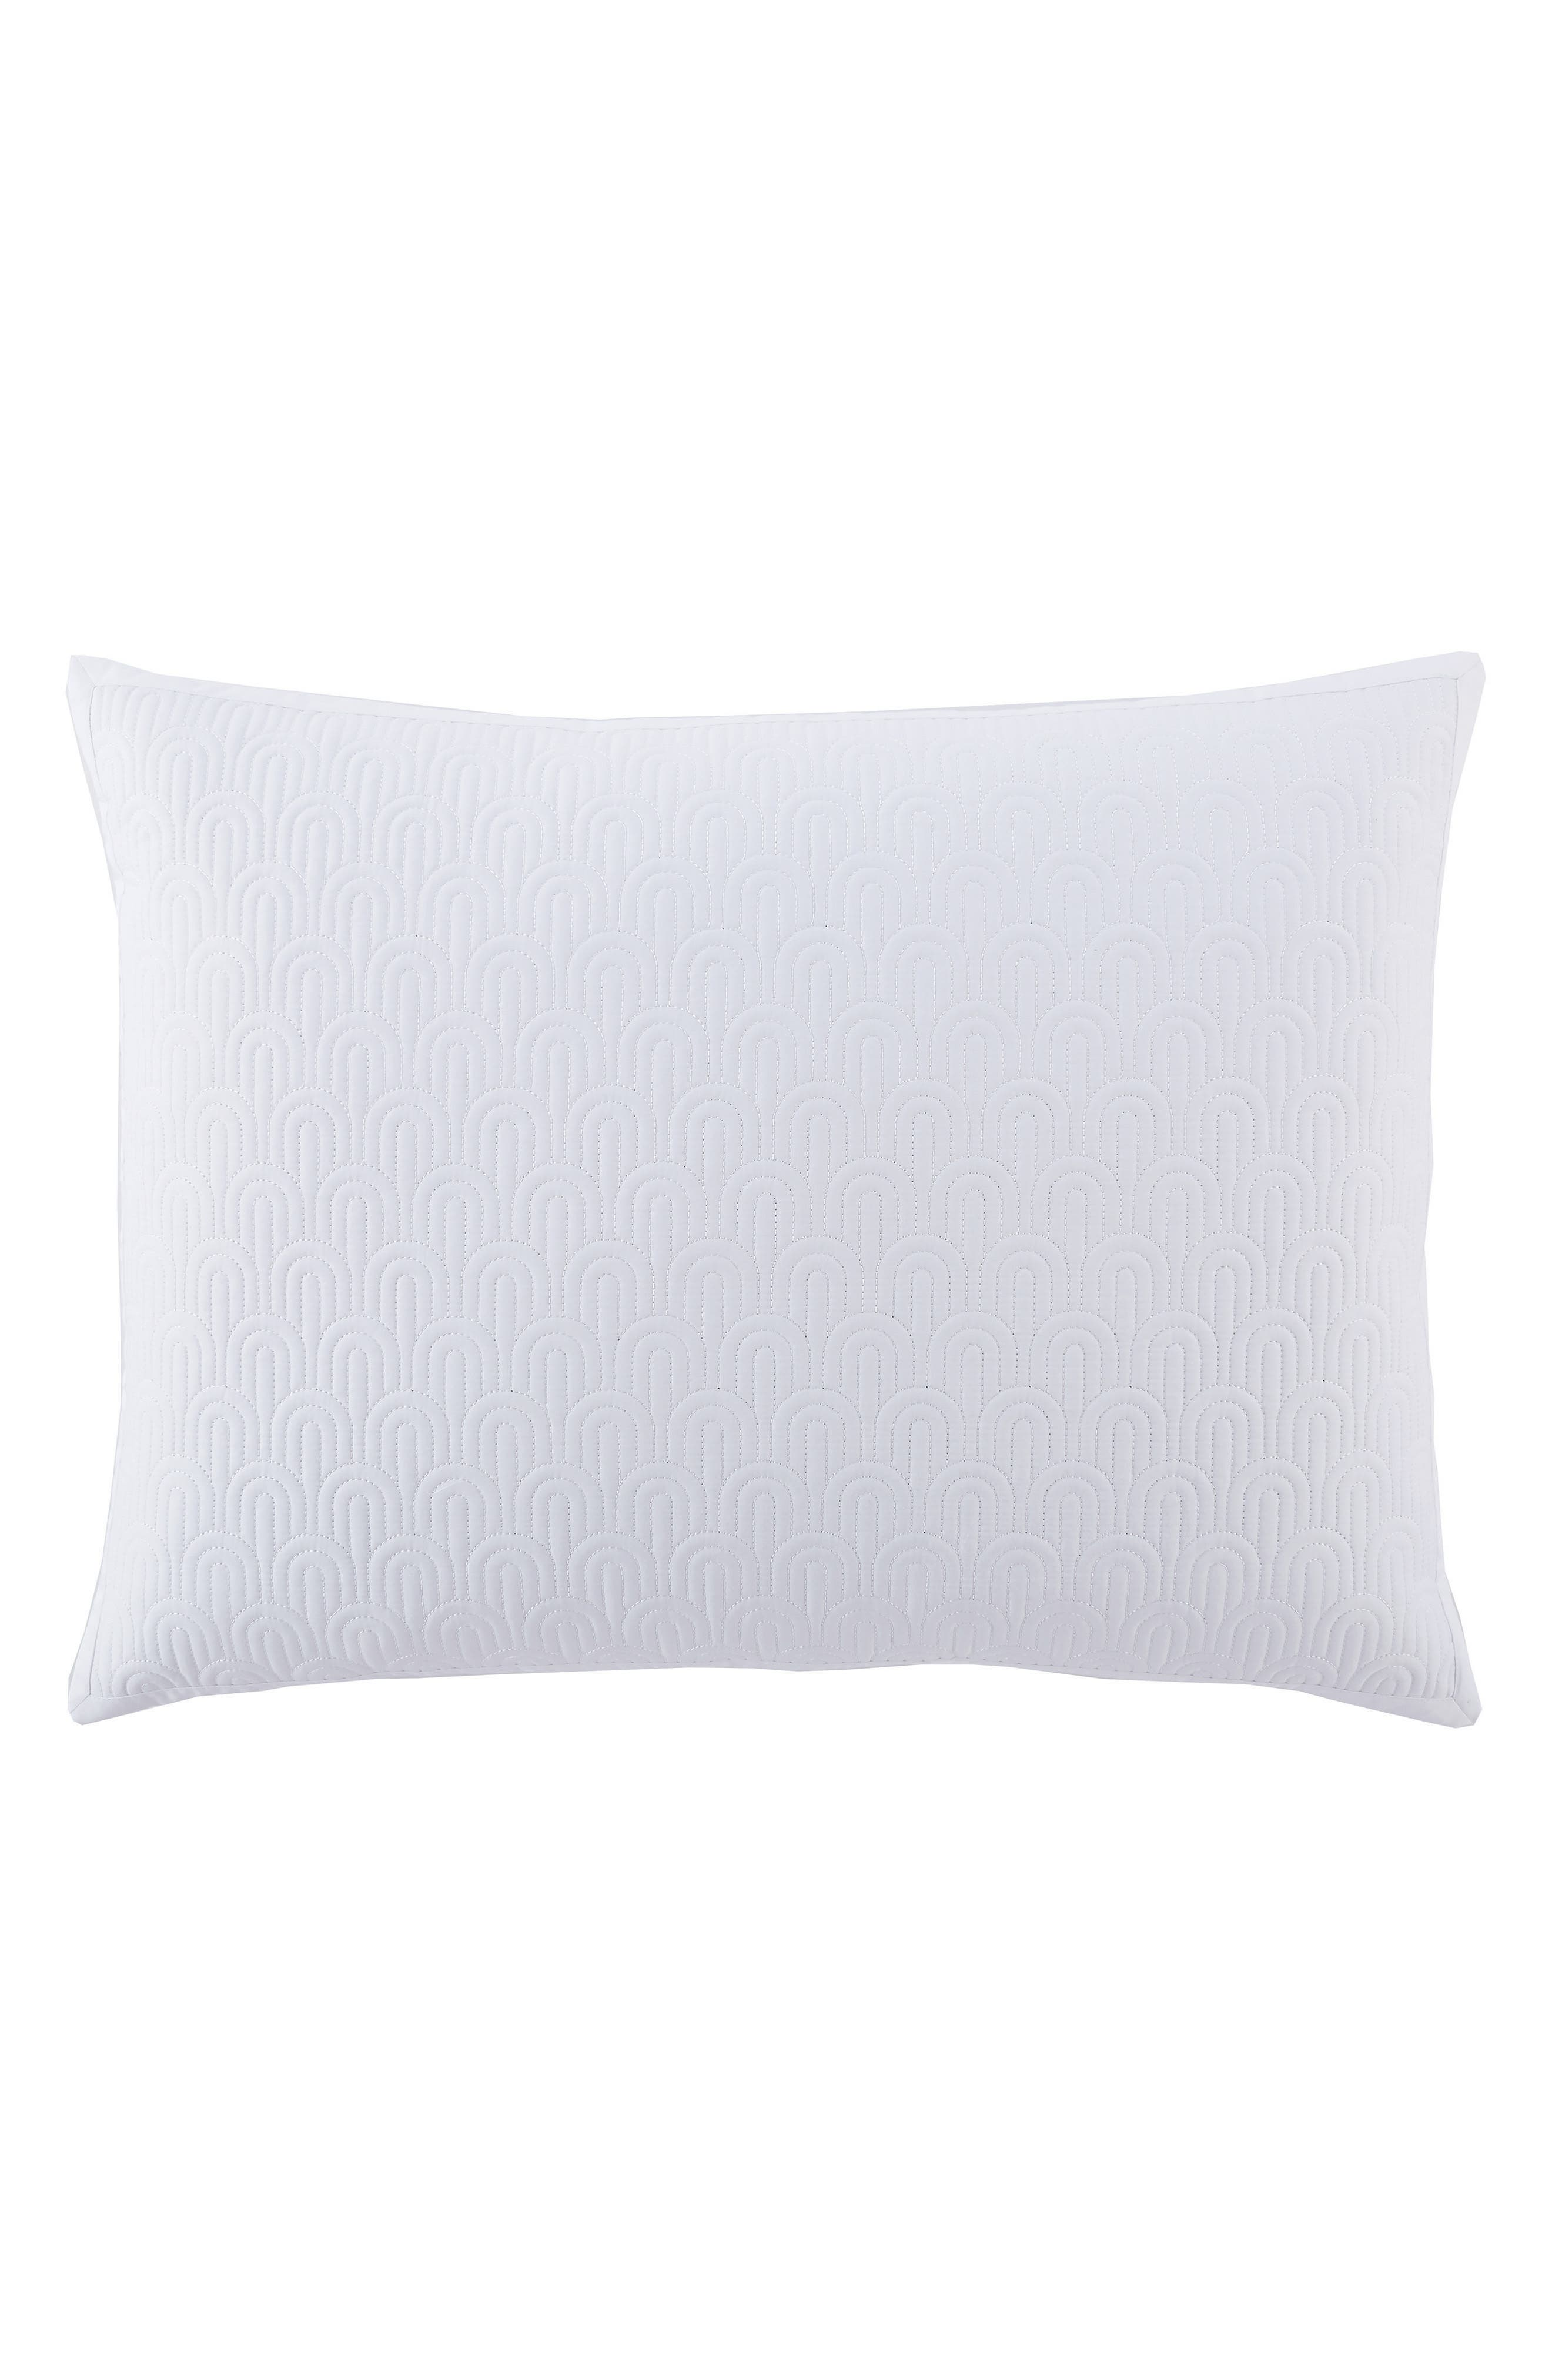 Quilted Sham,                         Main,                         color, WHITE